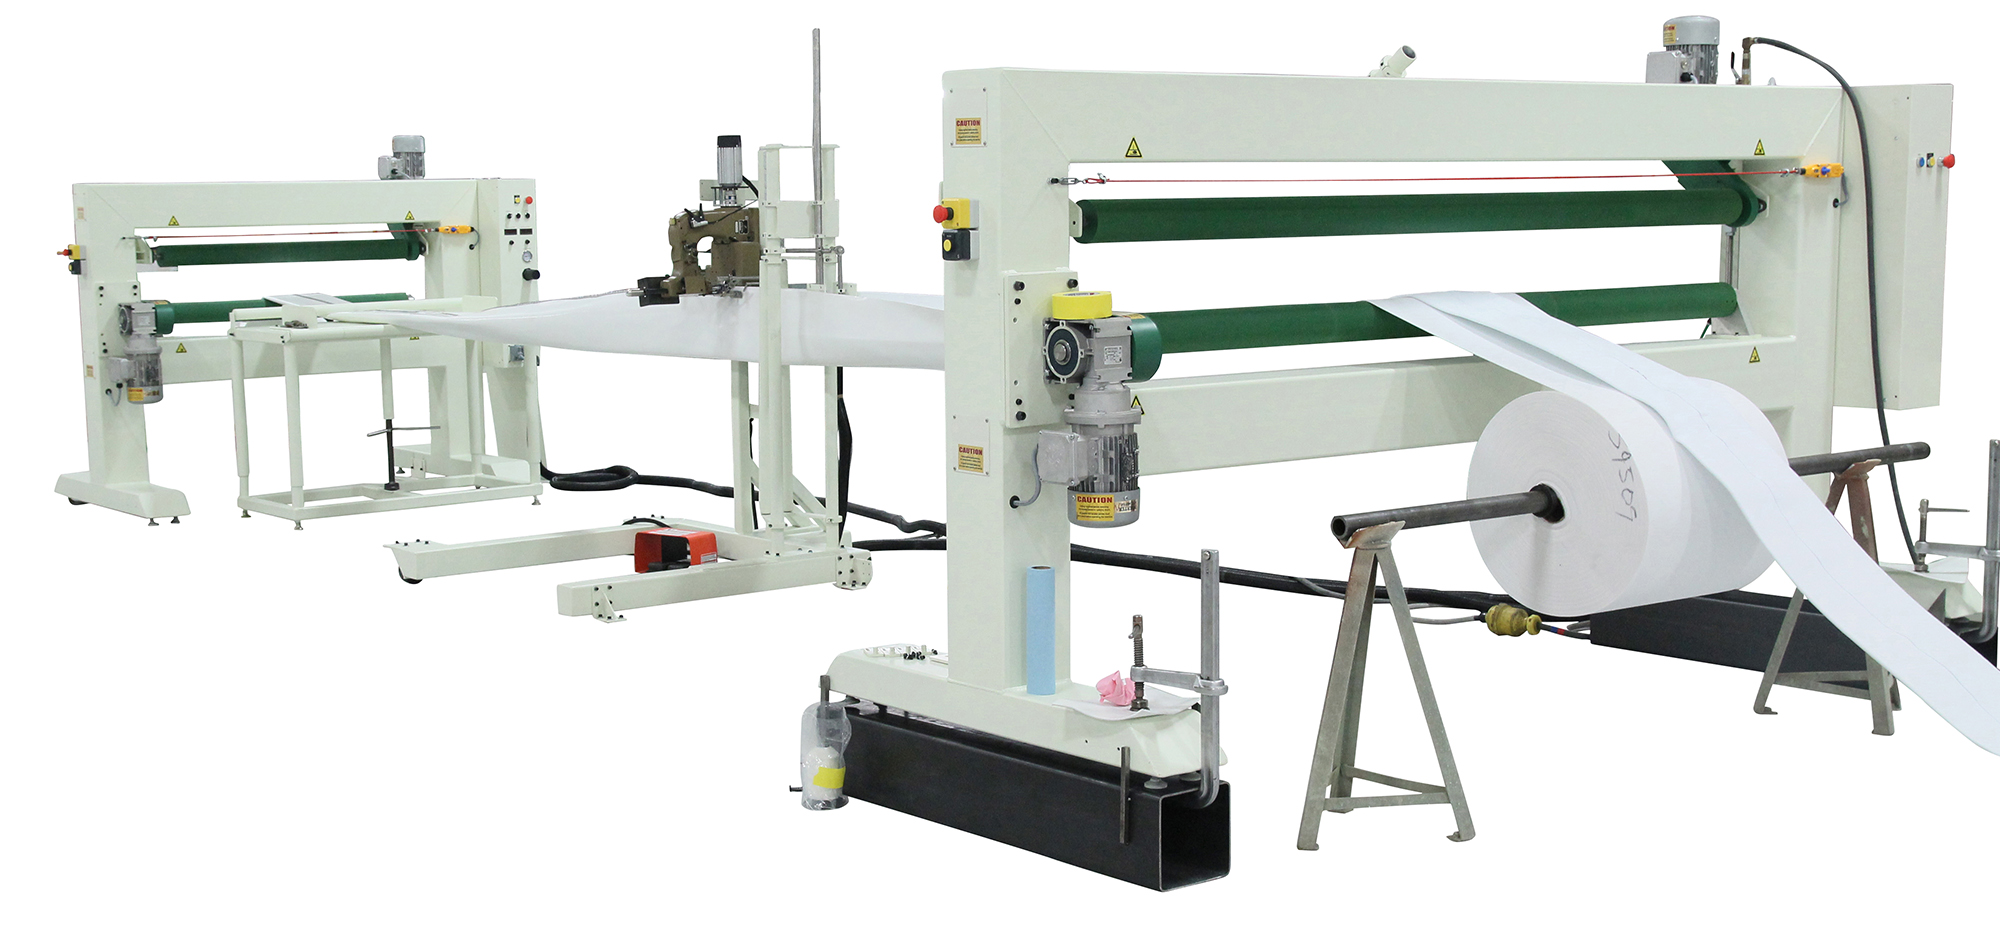 CIPP Double Tube Sewing -2